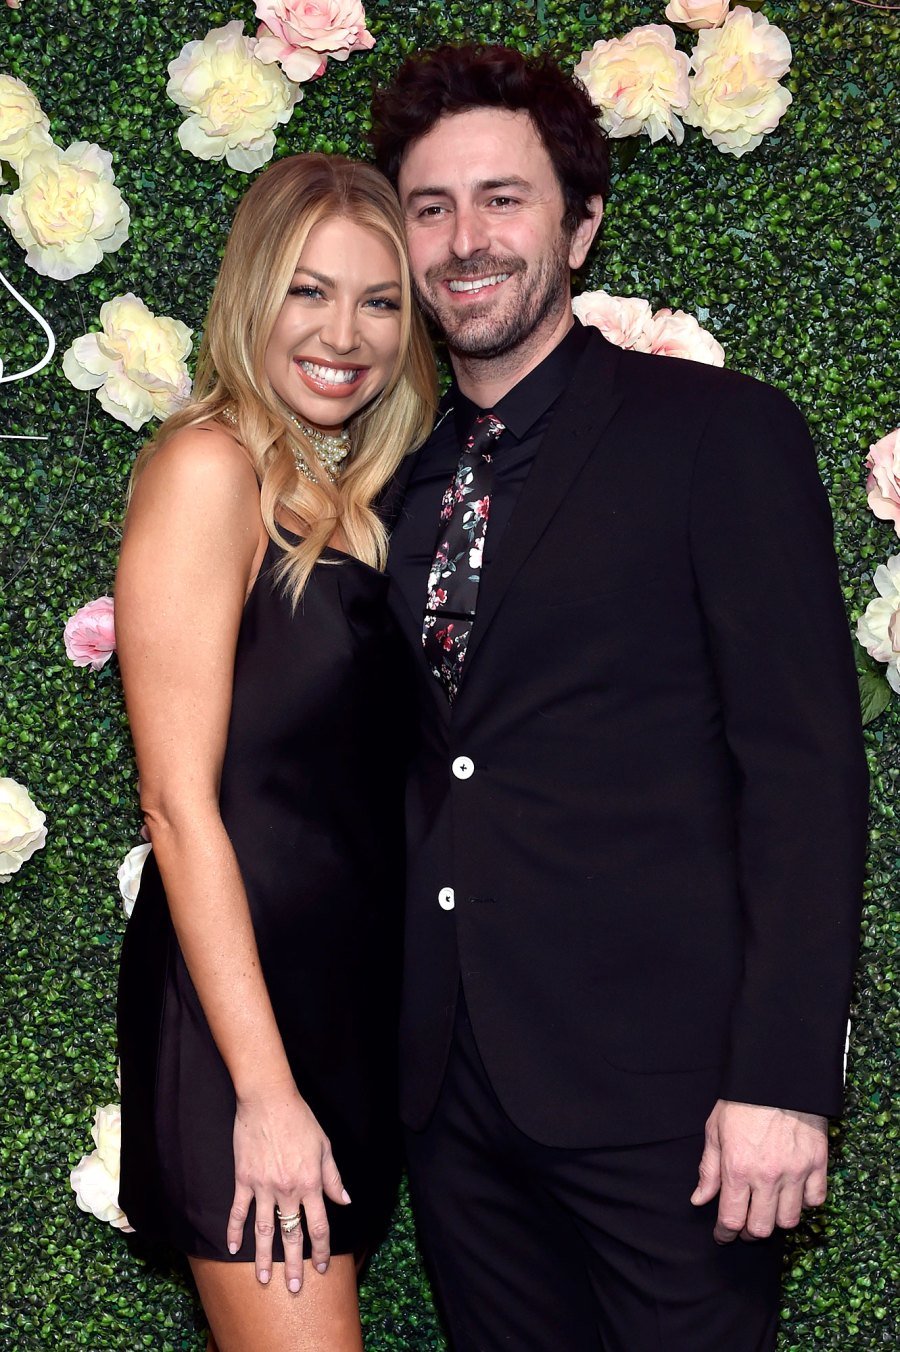 Vanderpump Rules Stassi Schroeder and Beau Clark on Their Engagement